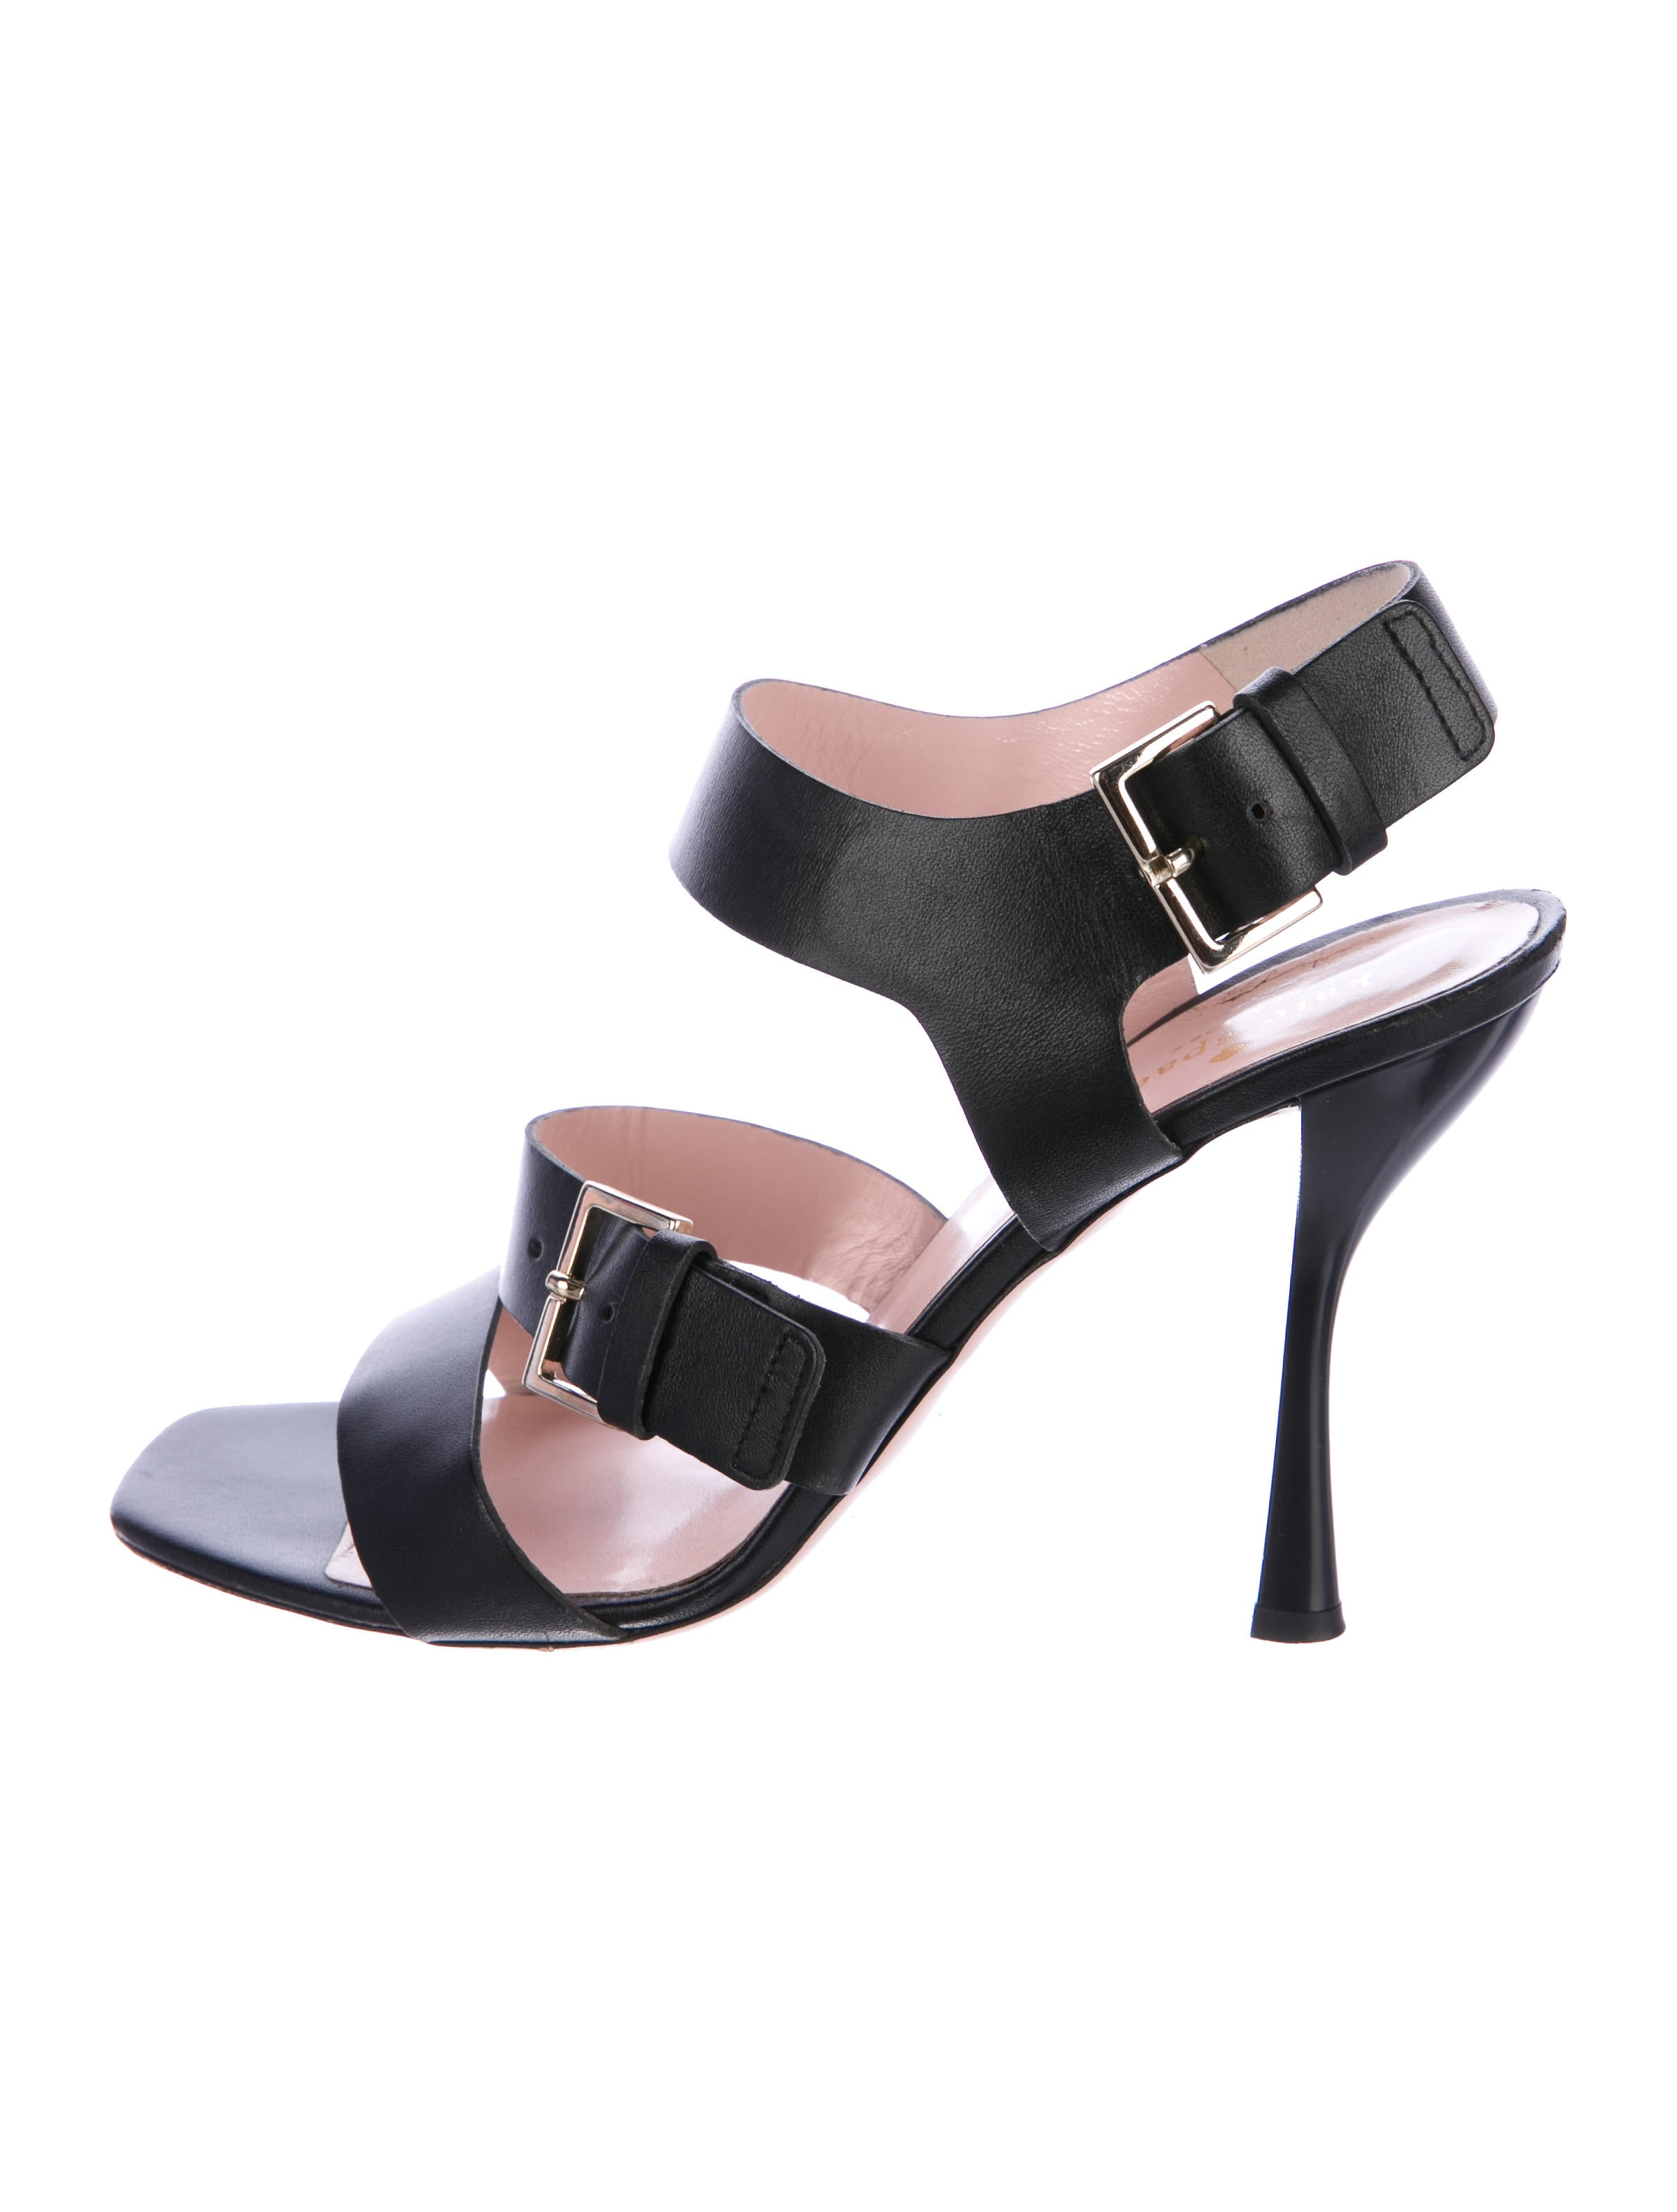 cheap official Kate Spade New York Leather Multi-Strap Sandals cheap sale 2014 newest MGMokM6Wfz